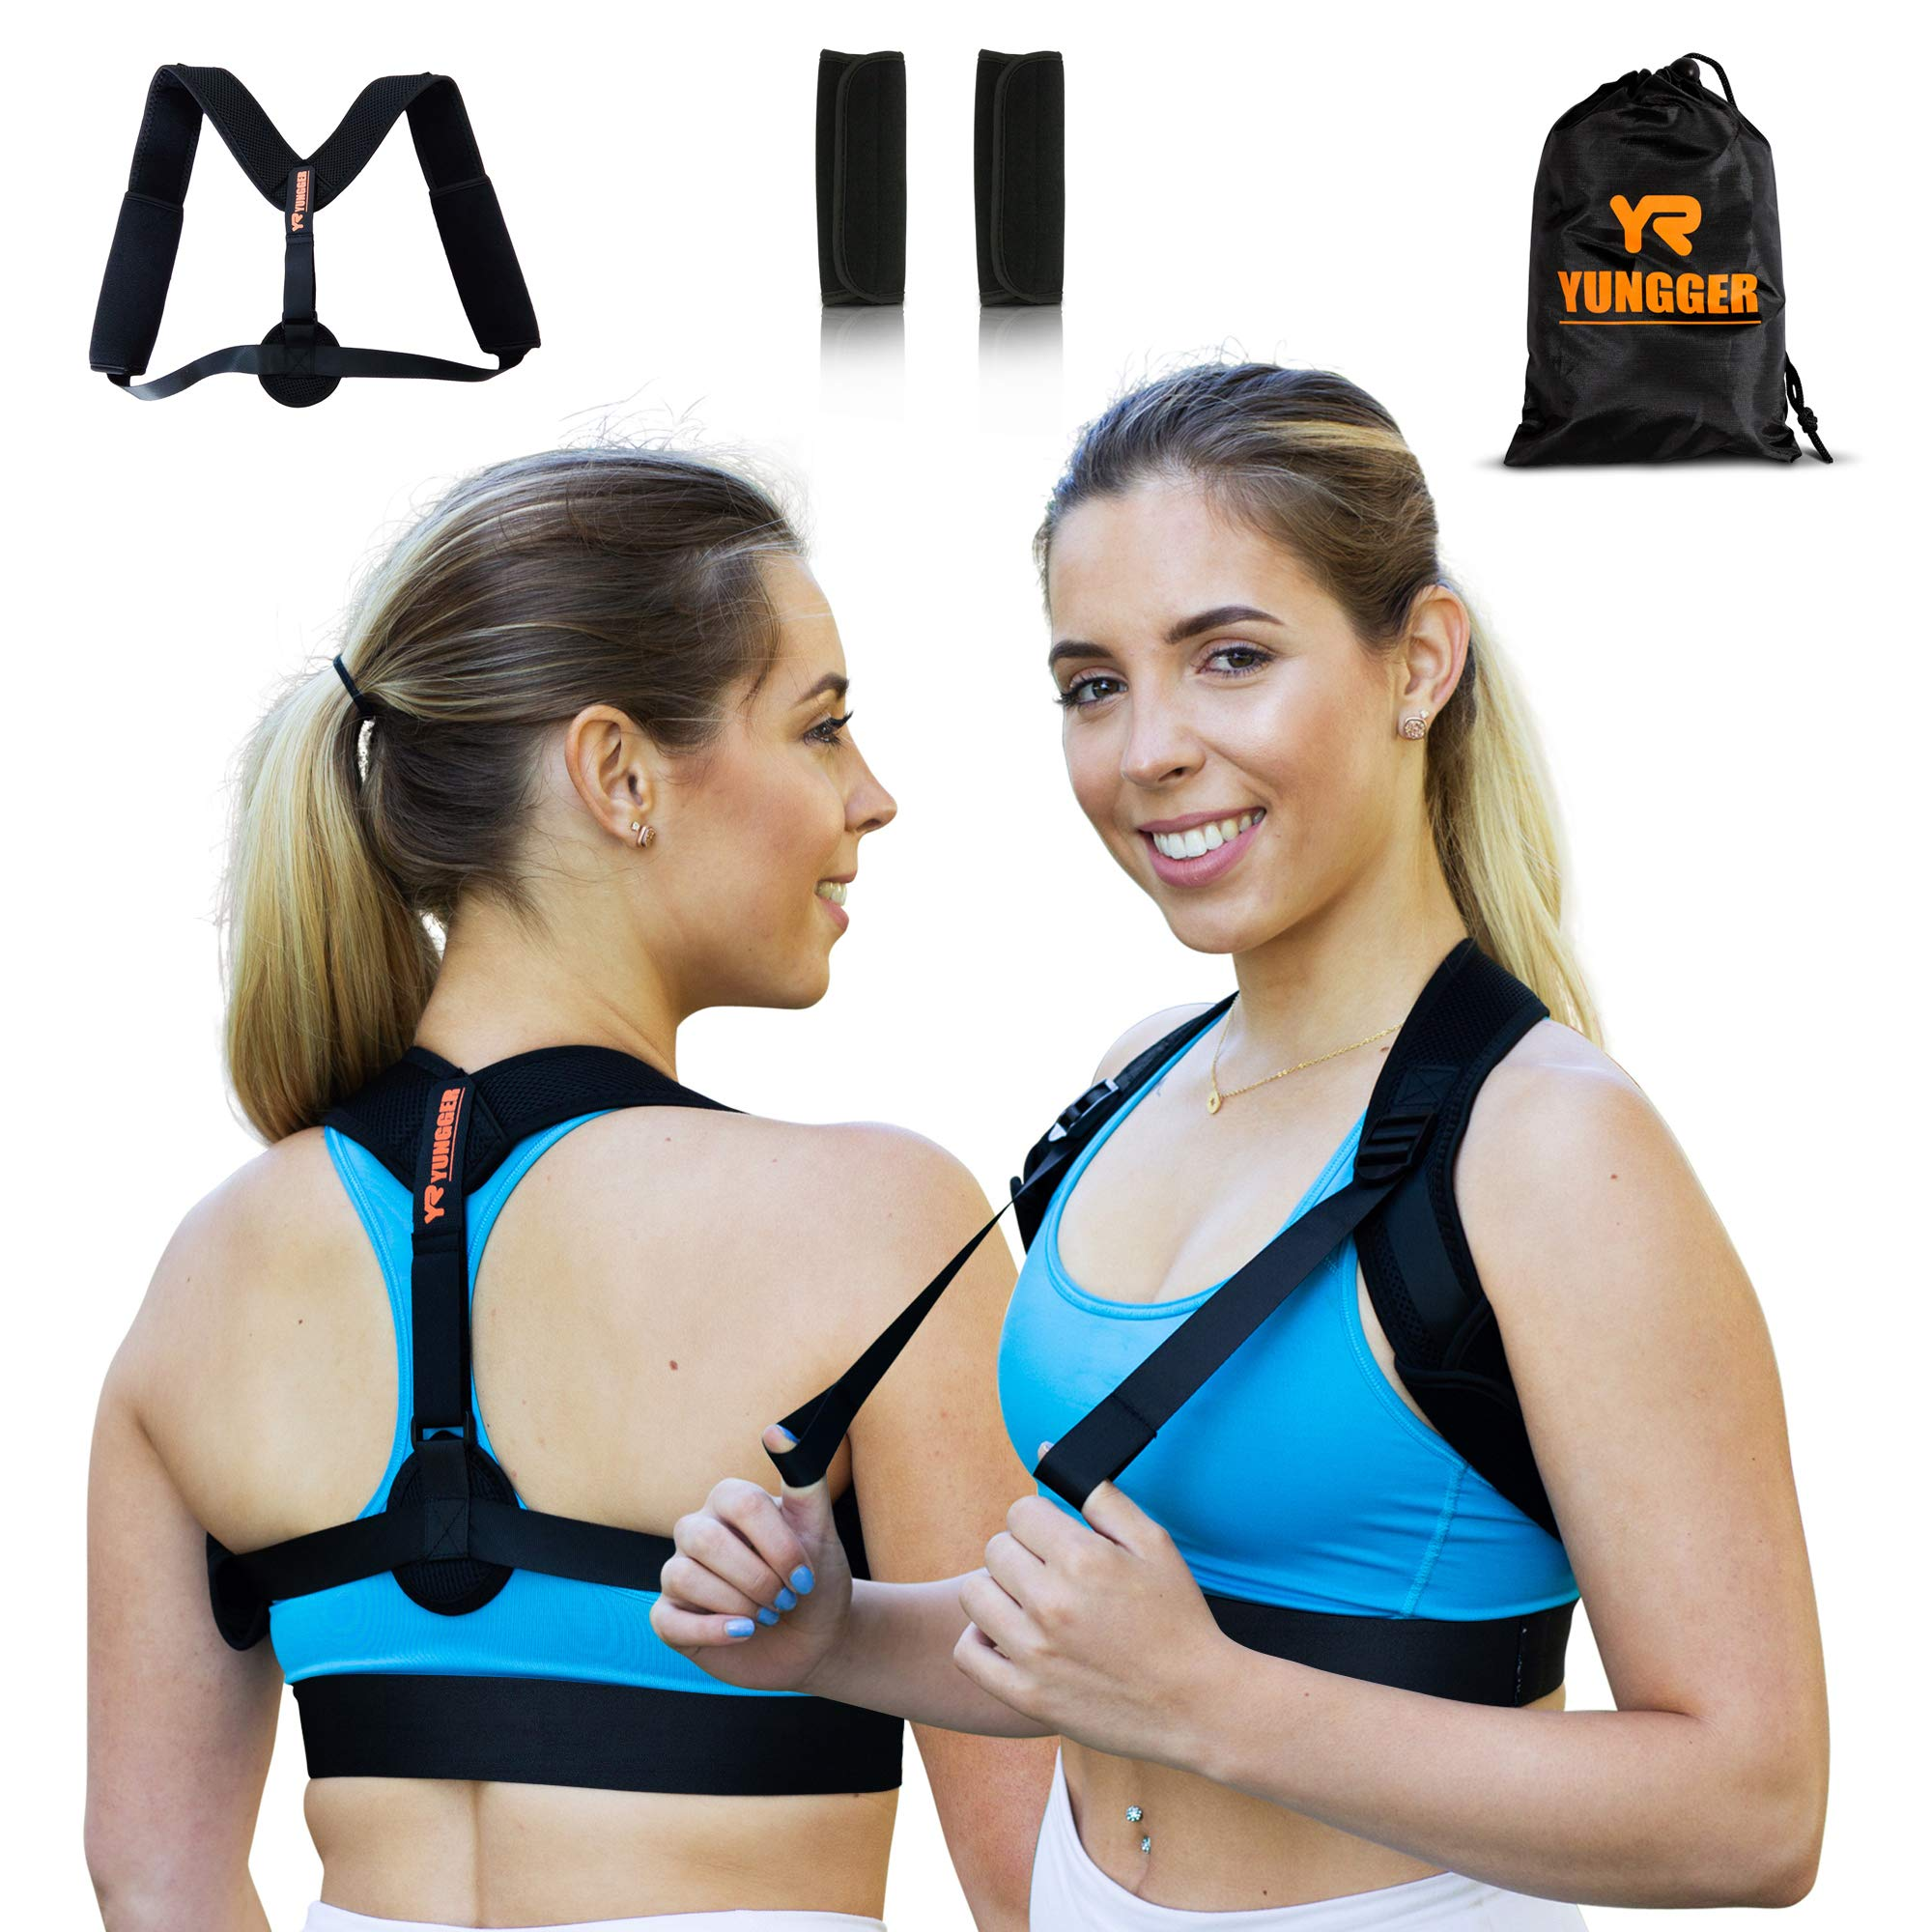 Yungger Back Posture Corrector for Women & Men-Orthopedic Brace-Discreet Design-Clavicle Support-Comfortable & Effective-Hunching & Slouching-Therapeutic Performance-Premium Breathable